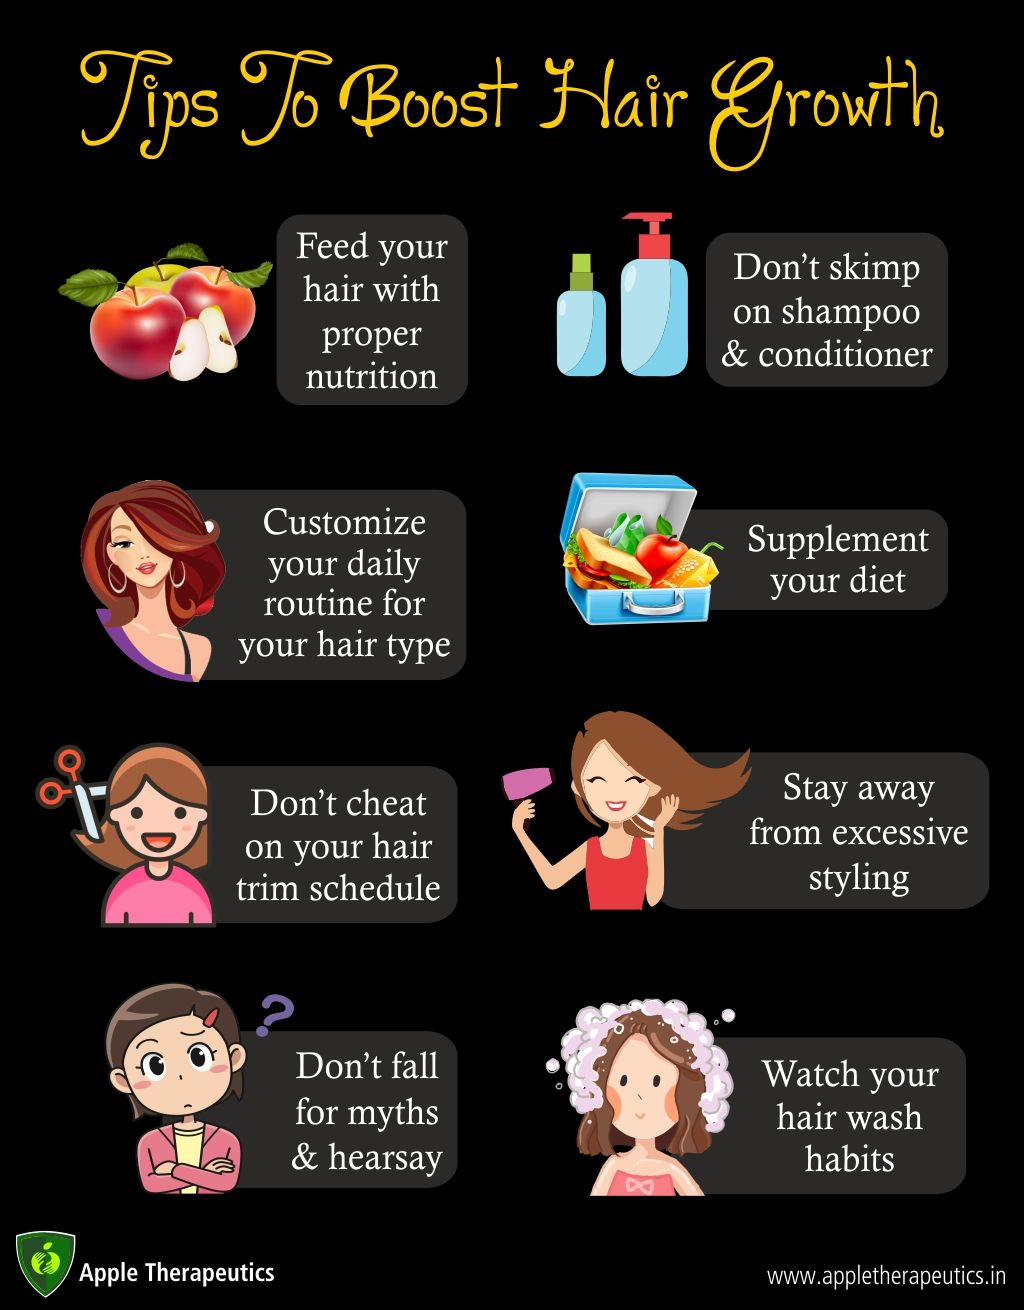 Supplement for Hair Growth} and Tips To Boost Hair Growth.!! #AppleTherapeutics #haircare #haircaretips #haircareroutine #hairgrowth #shampoo #trichology #haircareproducts #winterhaircare #hairgrowthshampoo #shampoo #hairoil #hairregrowth #winterhaircaretips #beautytips #healthyhairs